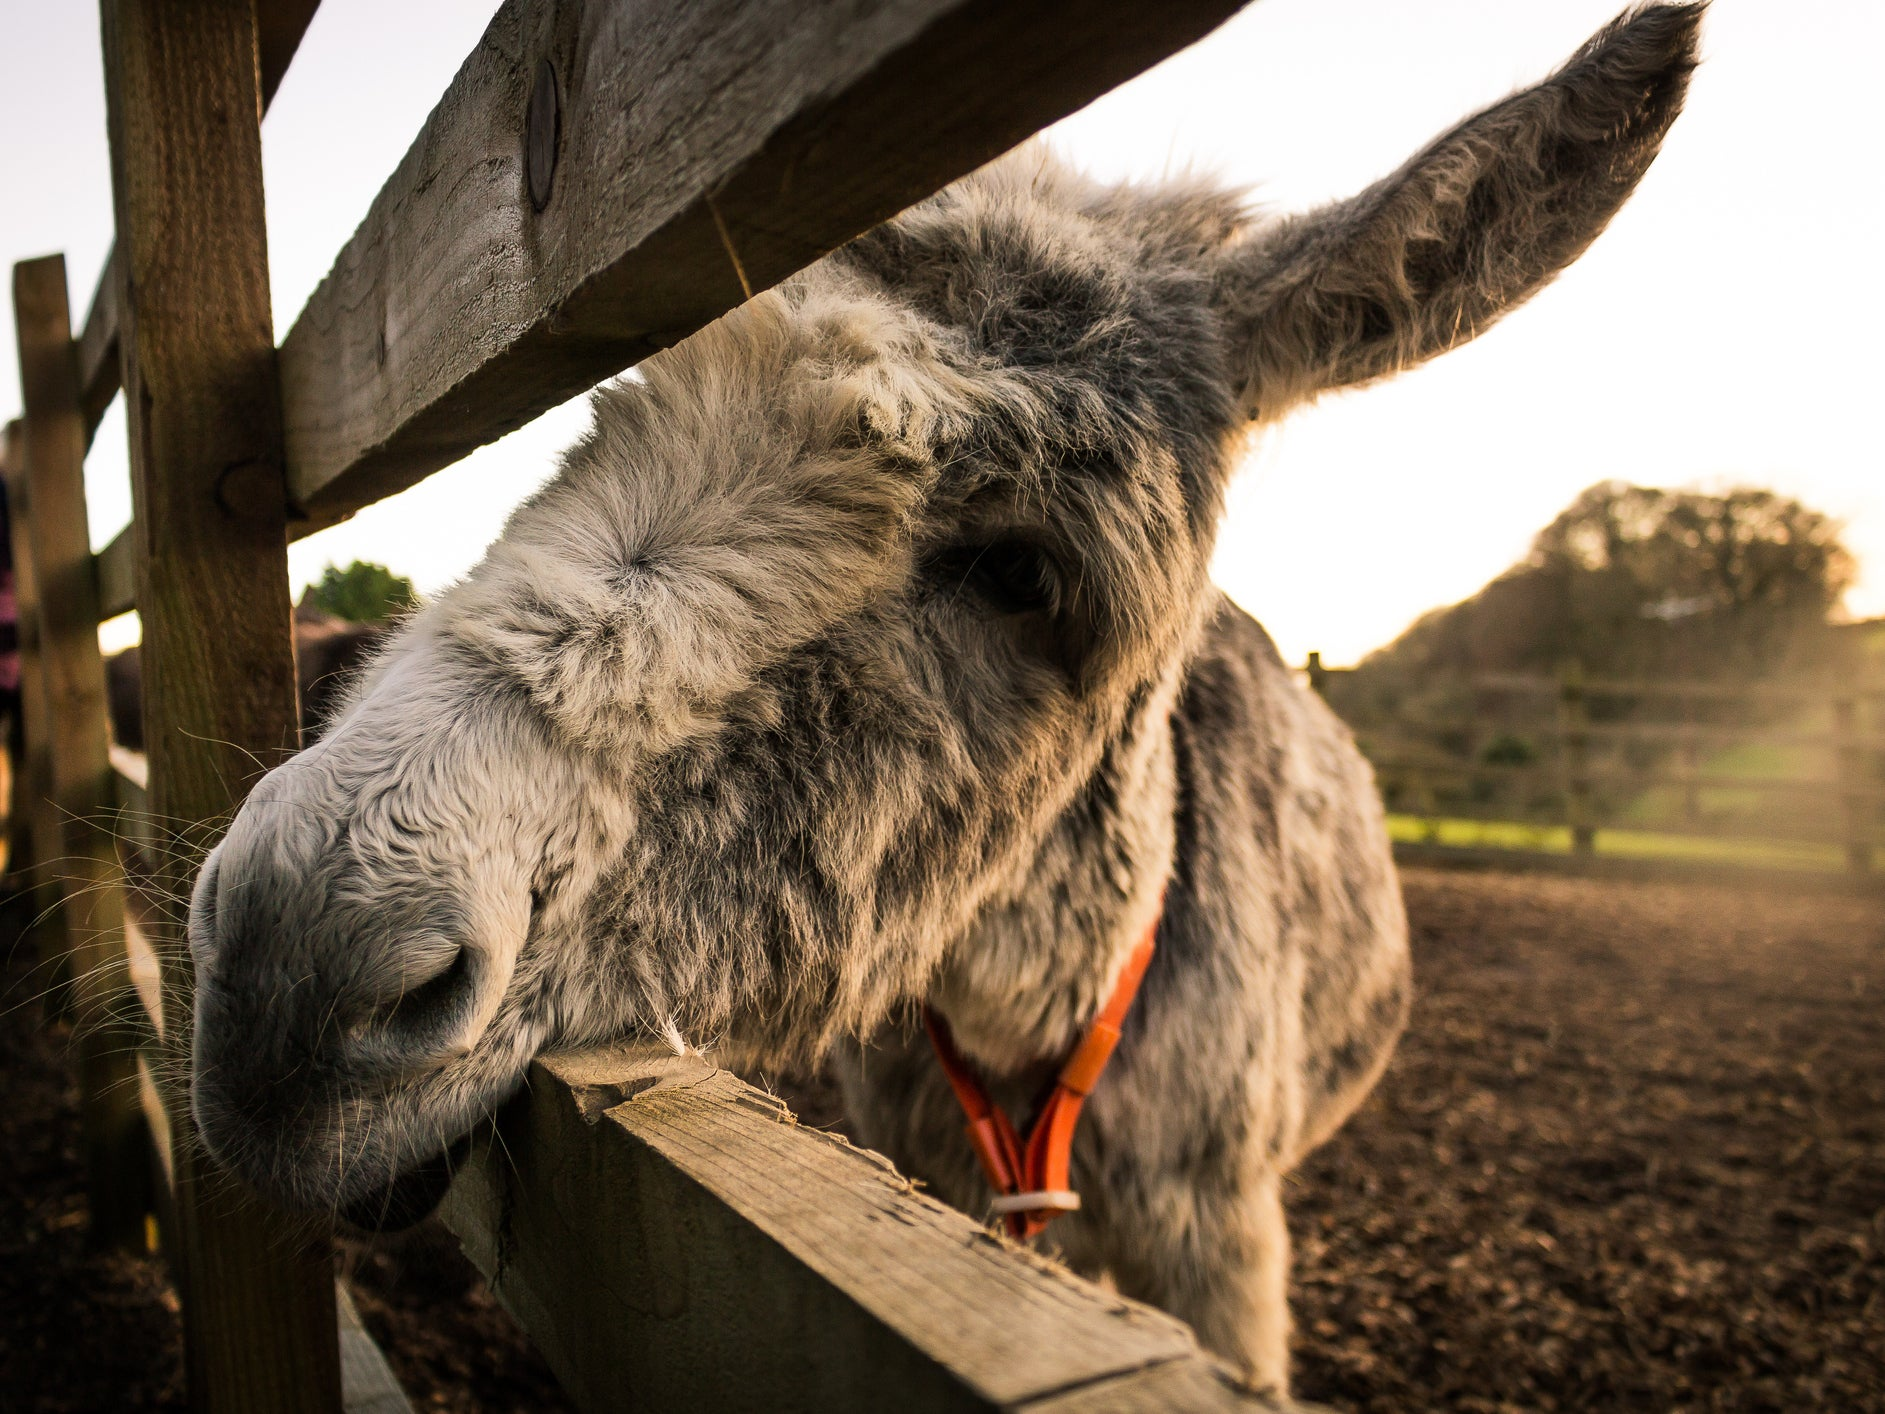 Half of the world's donkey population could be killed in next five years amid surge in demand for Chinese medicine